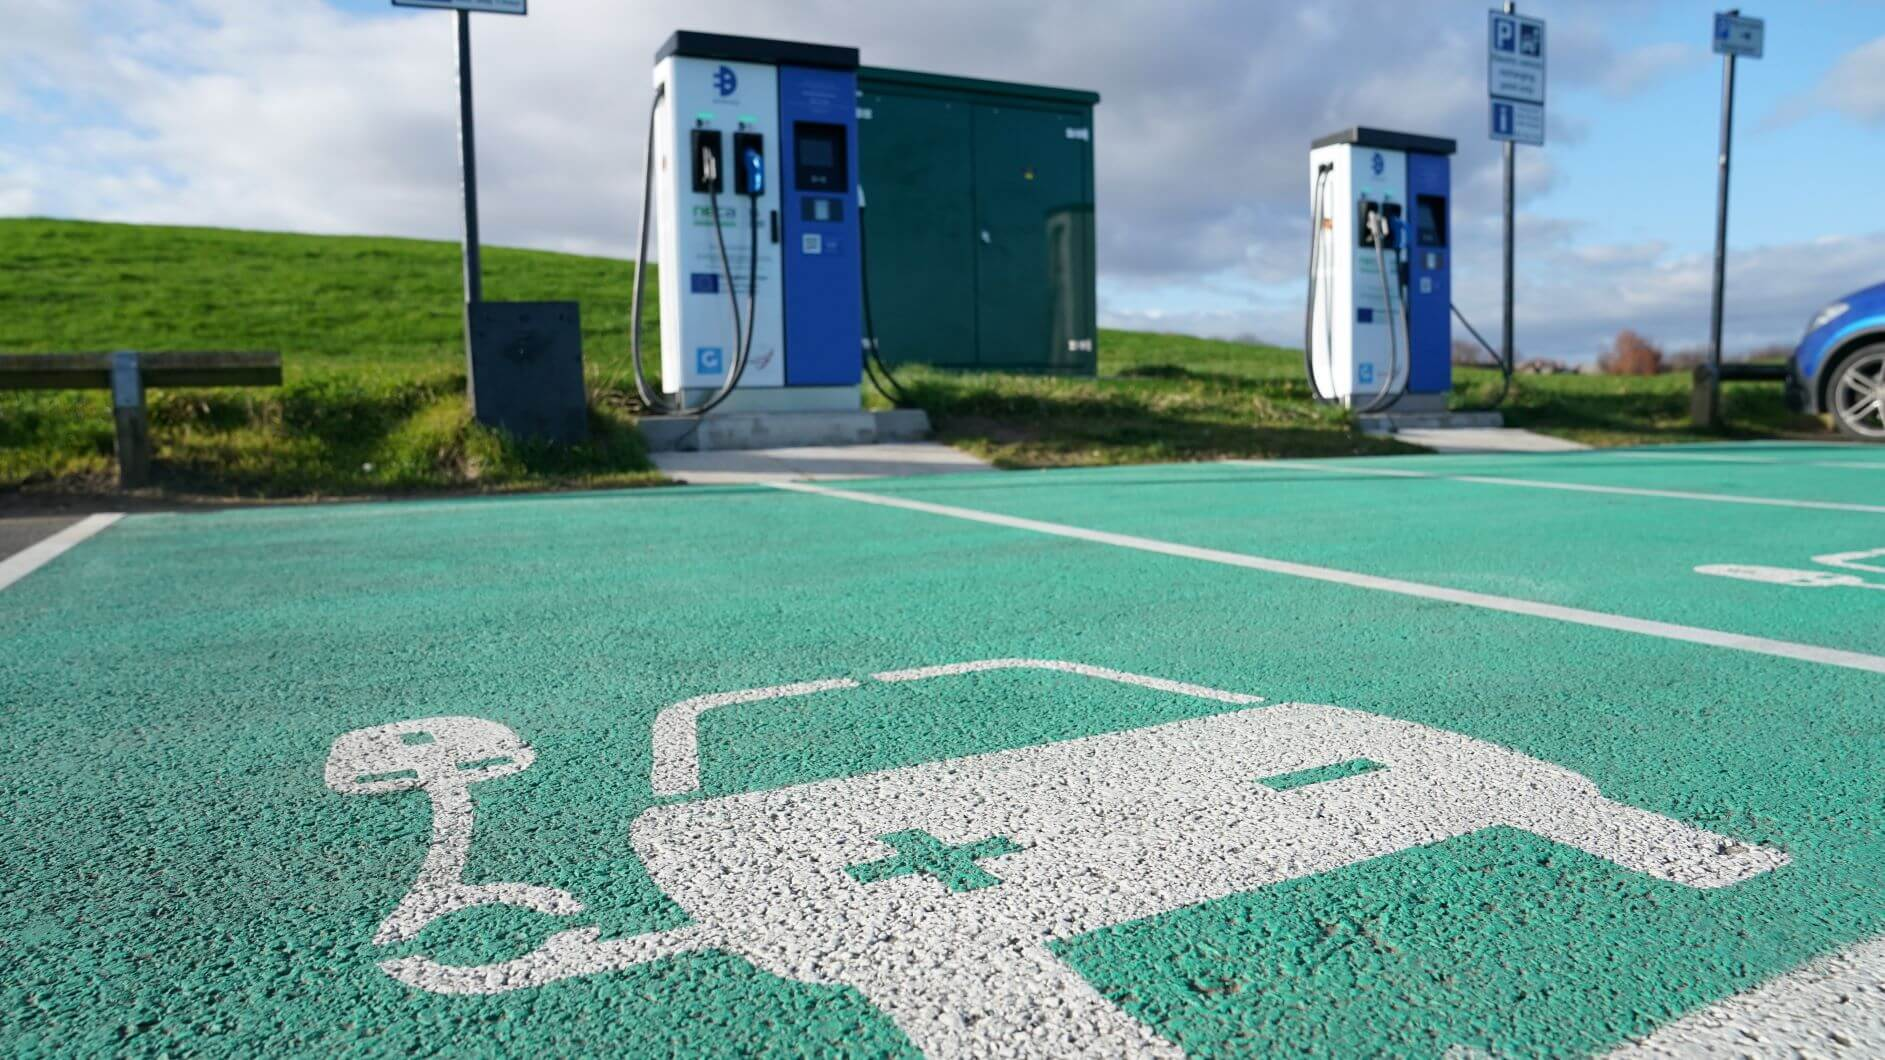 How Electric Cars Are Becoming More Popular In The UK